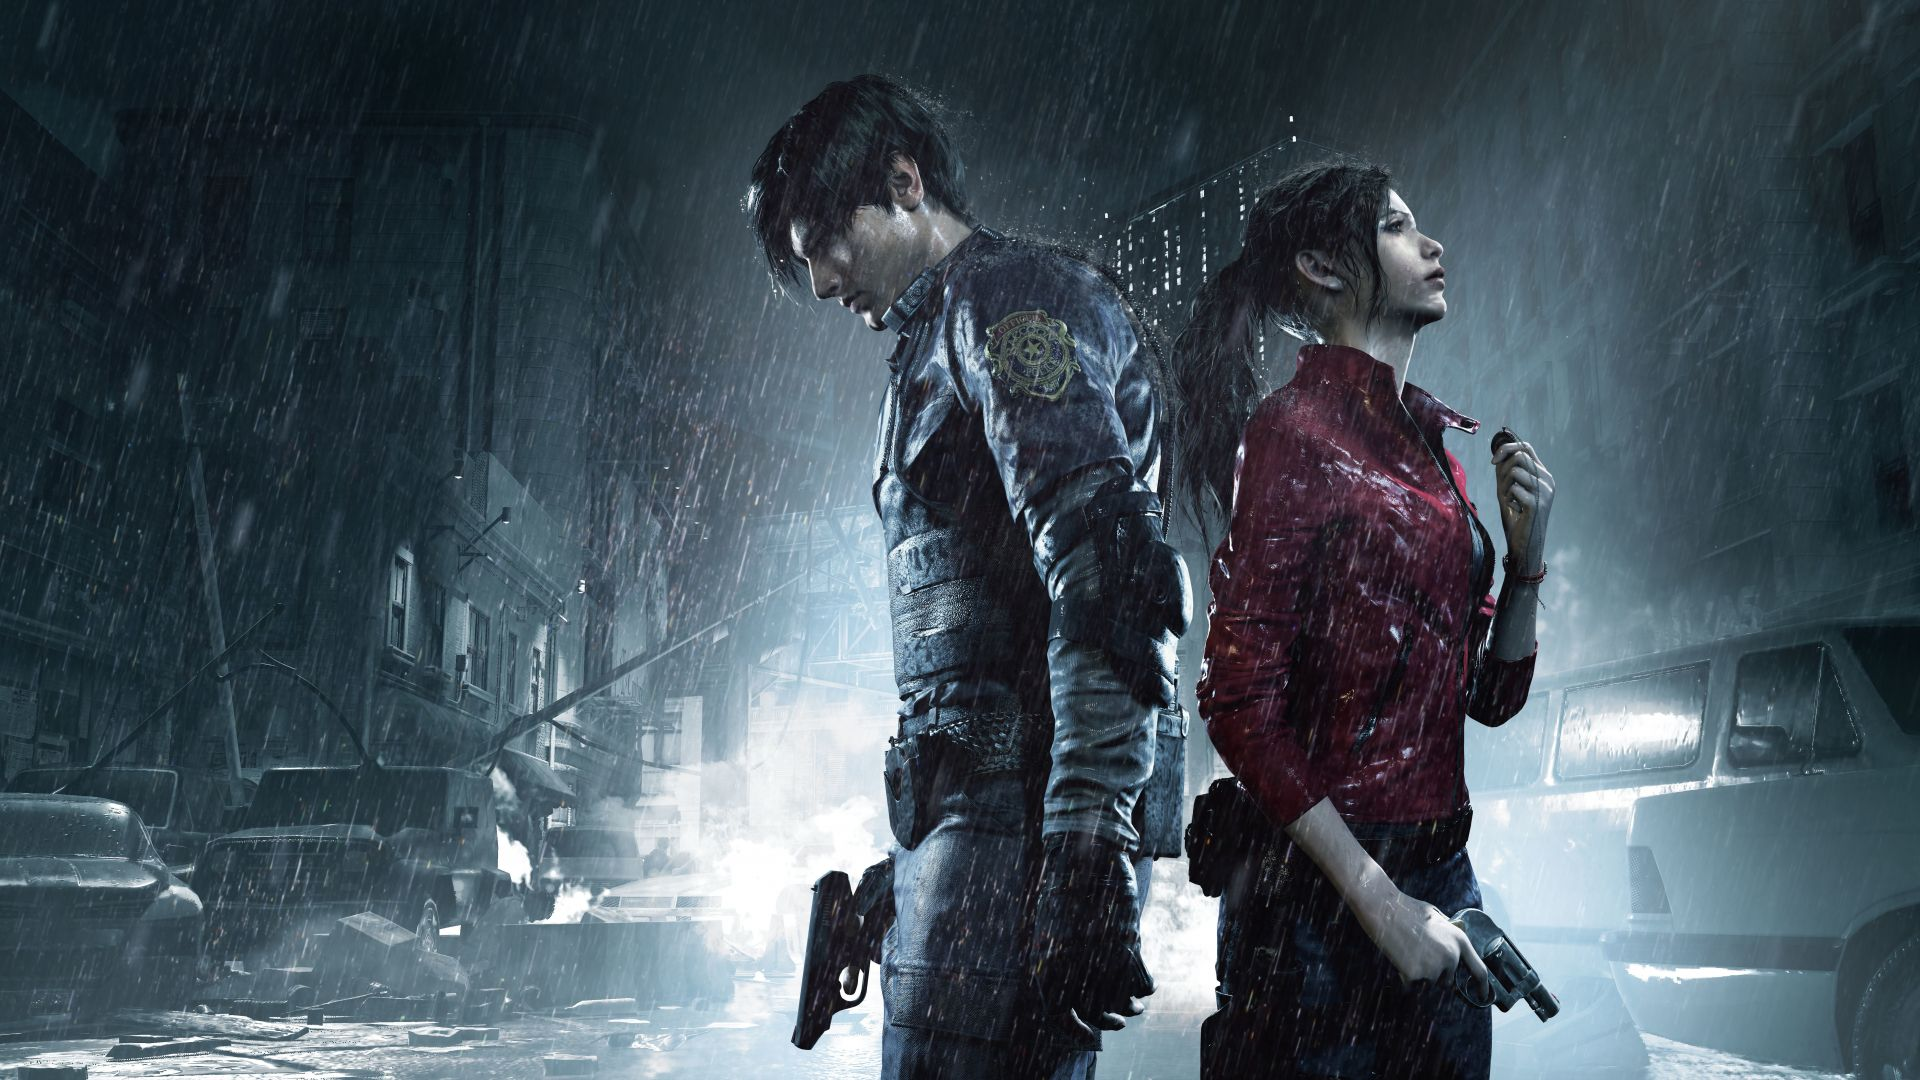 Resident Evil 2, Gamescom 2018, poster, artwork, 10K (horizontal)